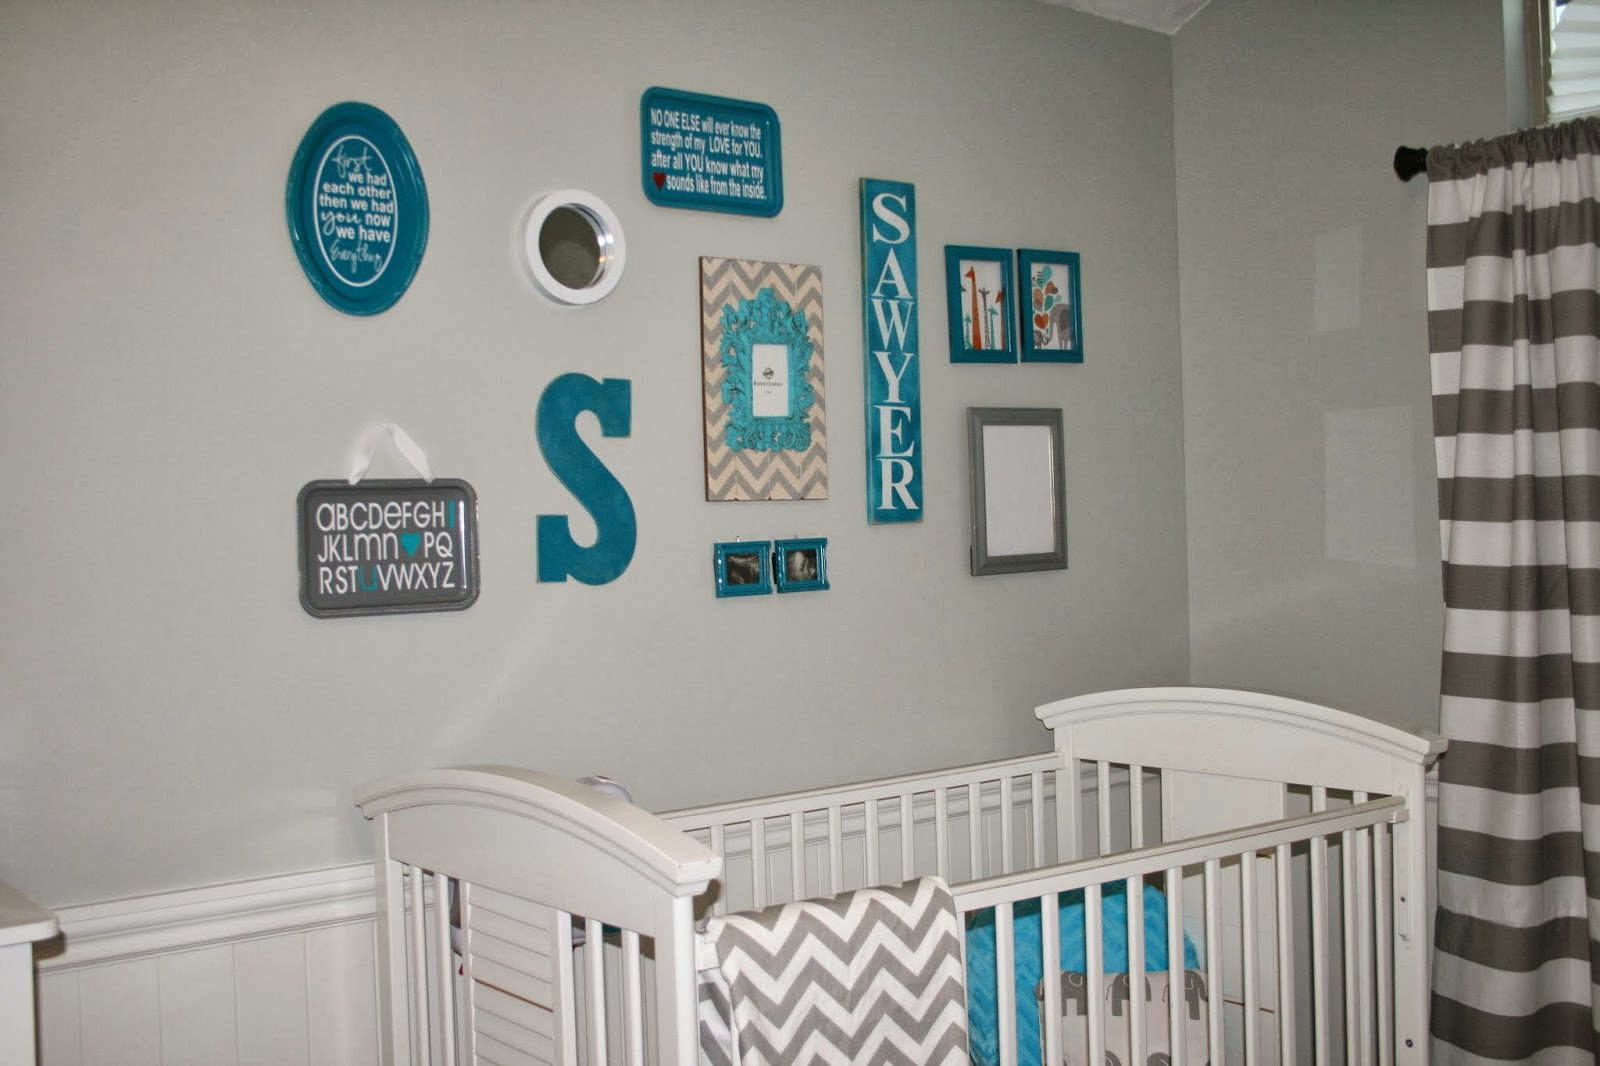 Creative juices baby room decor and collage wall for Baby room mural ideas